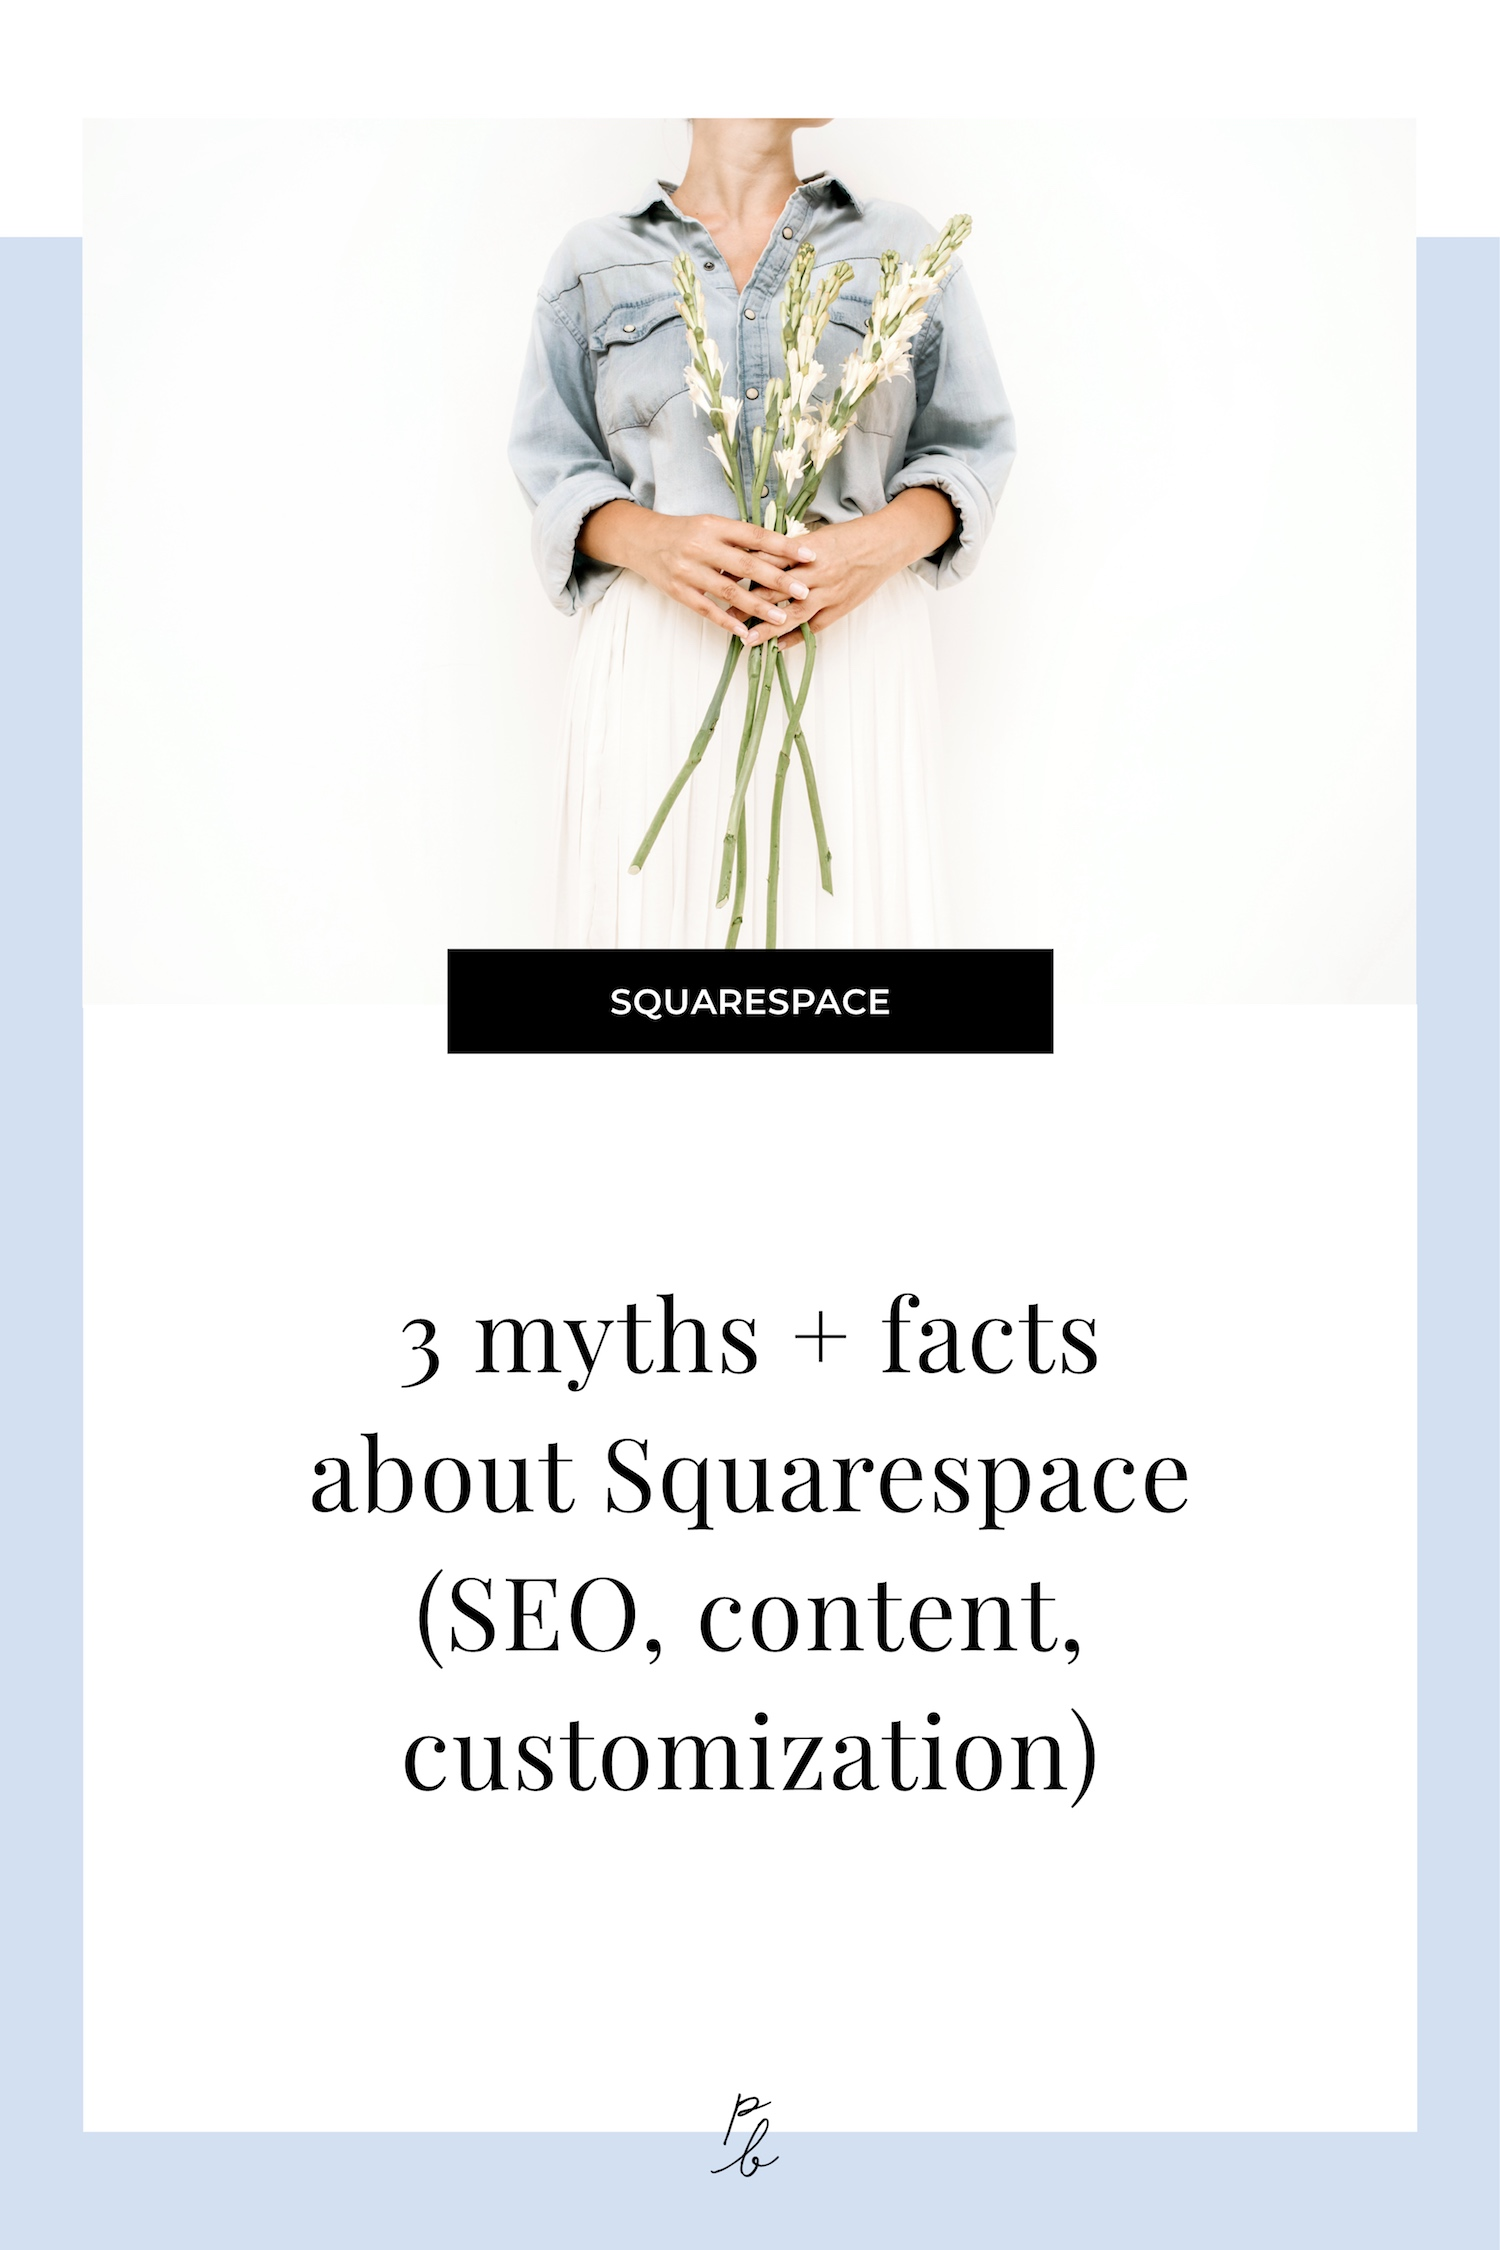 3 myths and facts about Squarespace.jpg